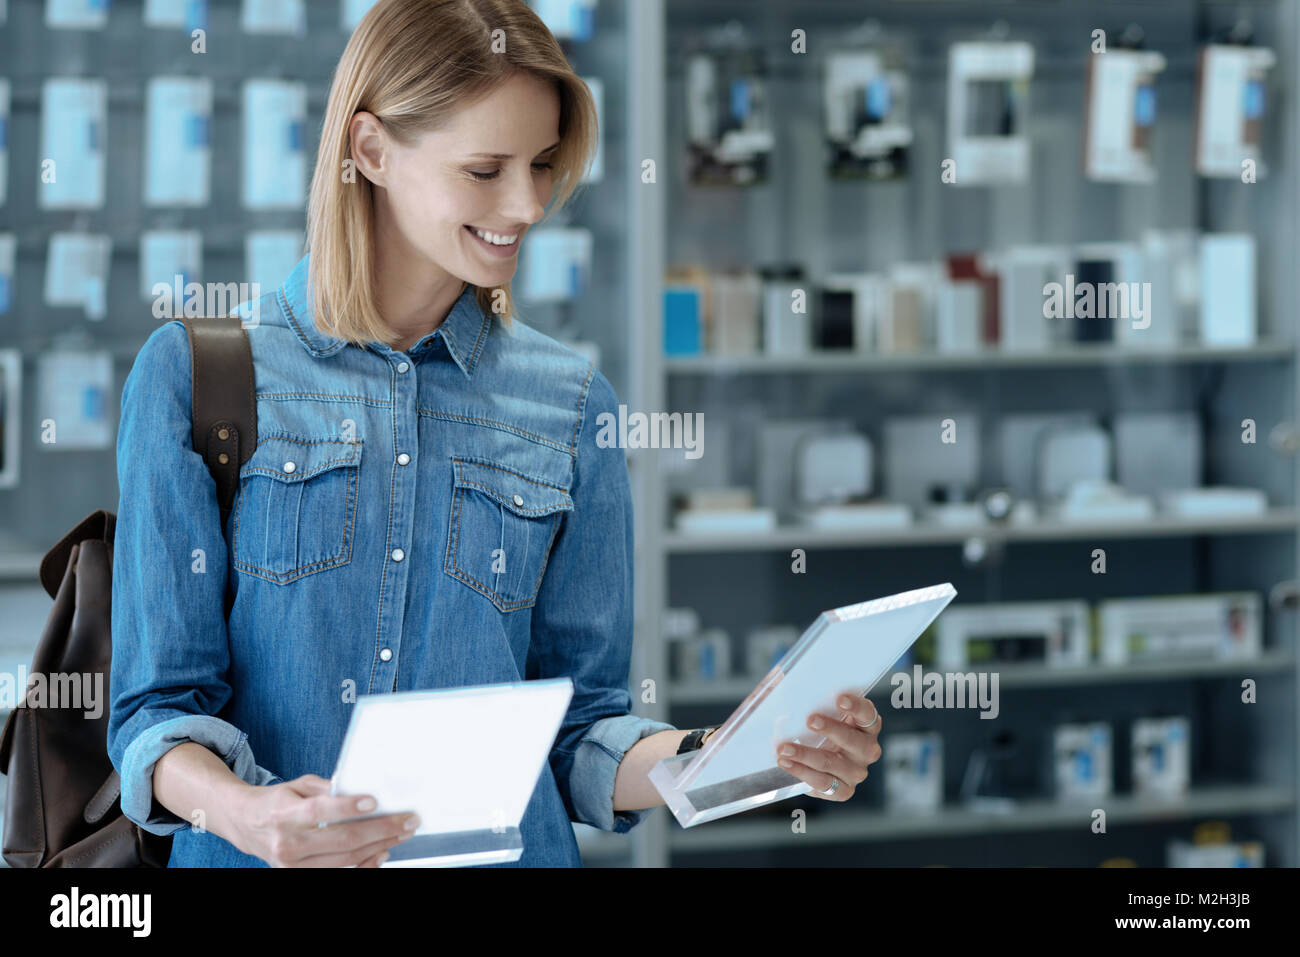 Cheerful woman holding two name boards - Stock Image